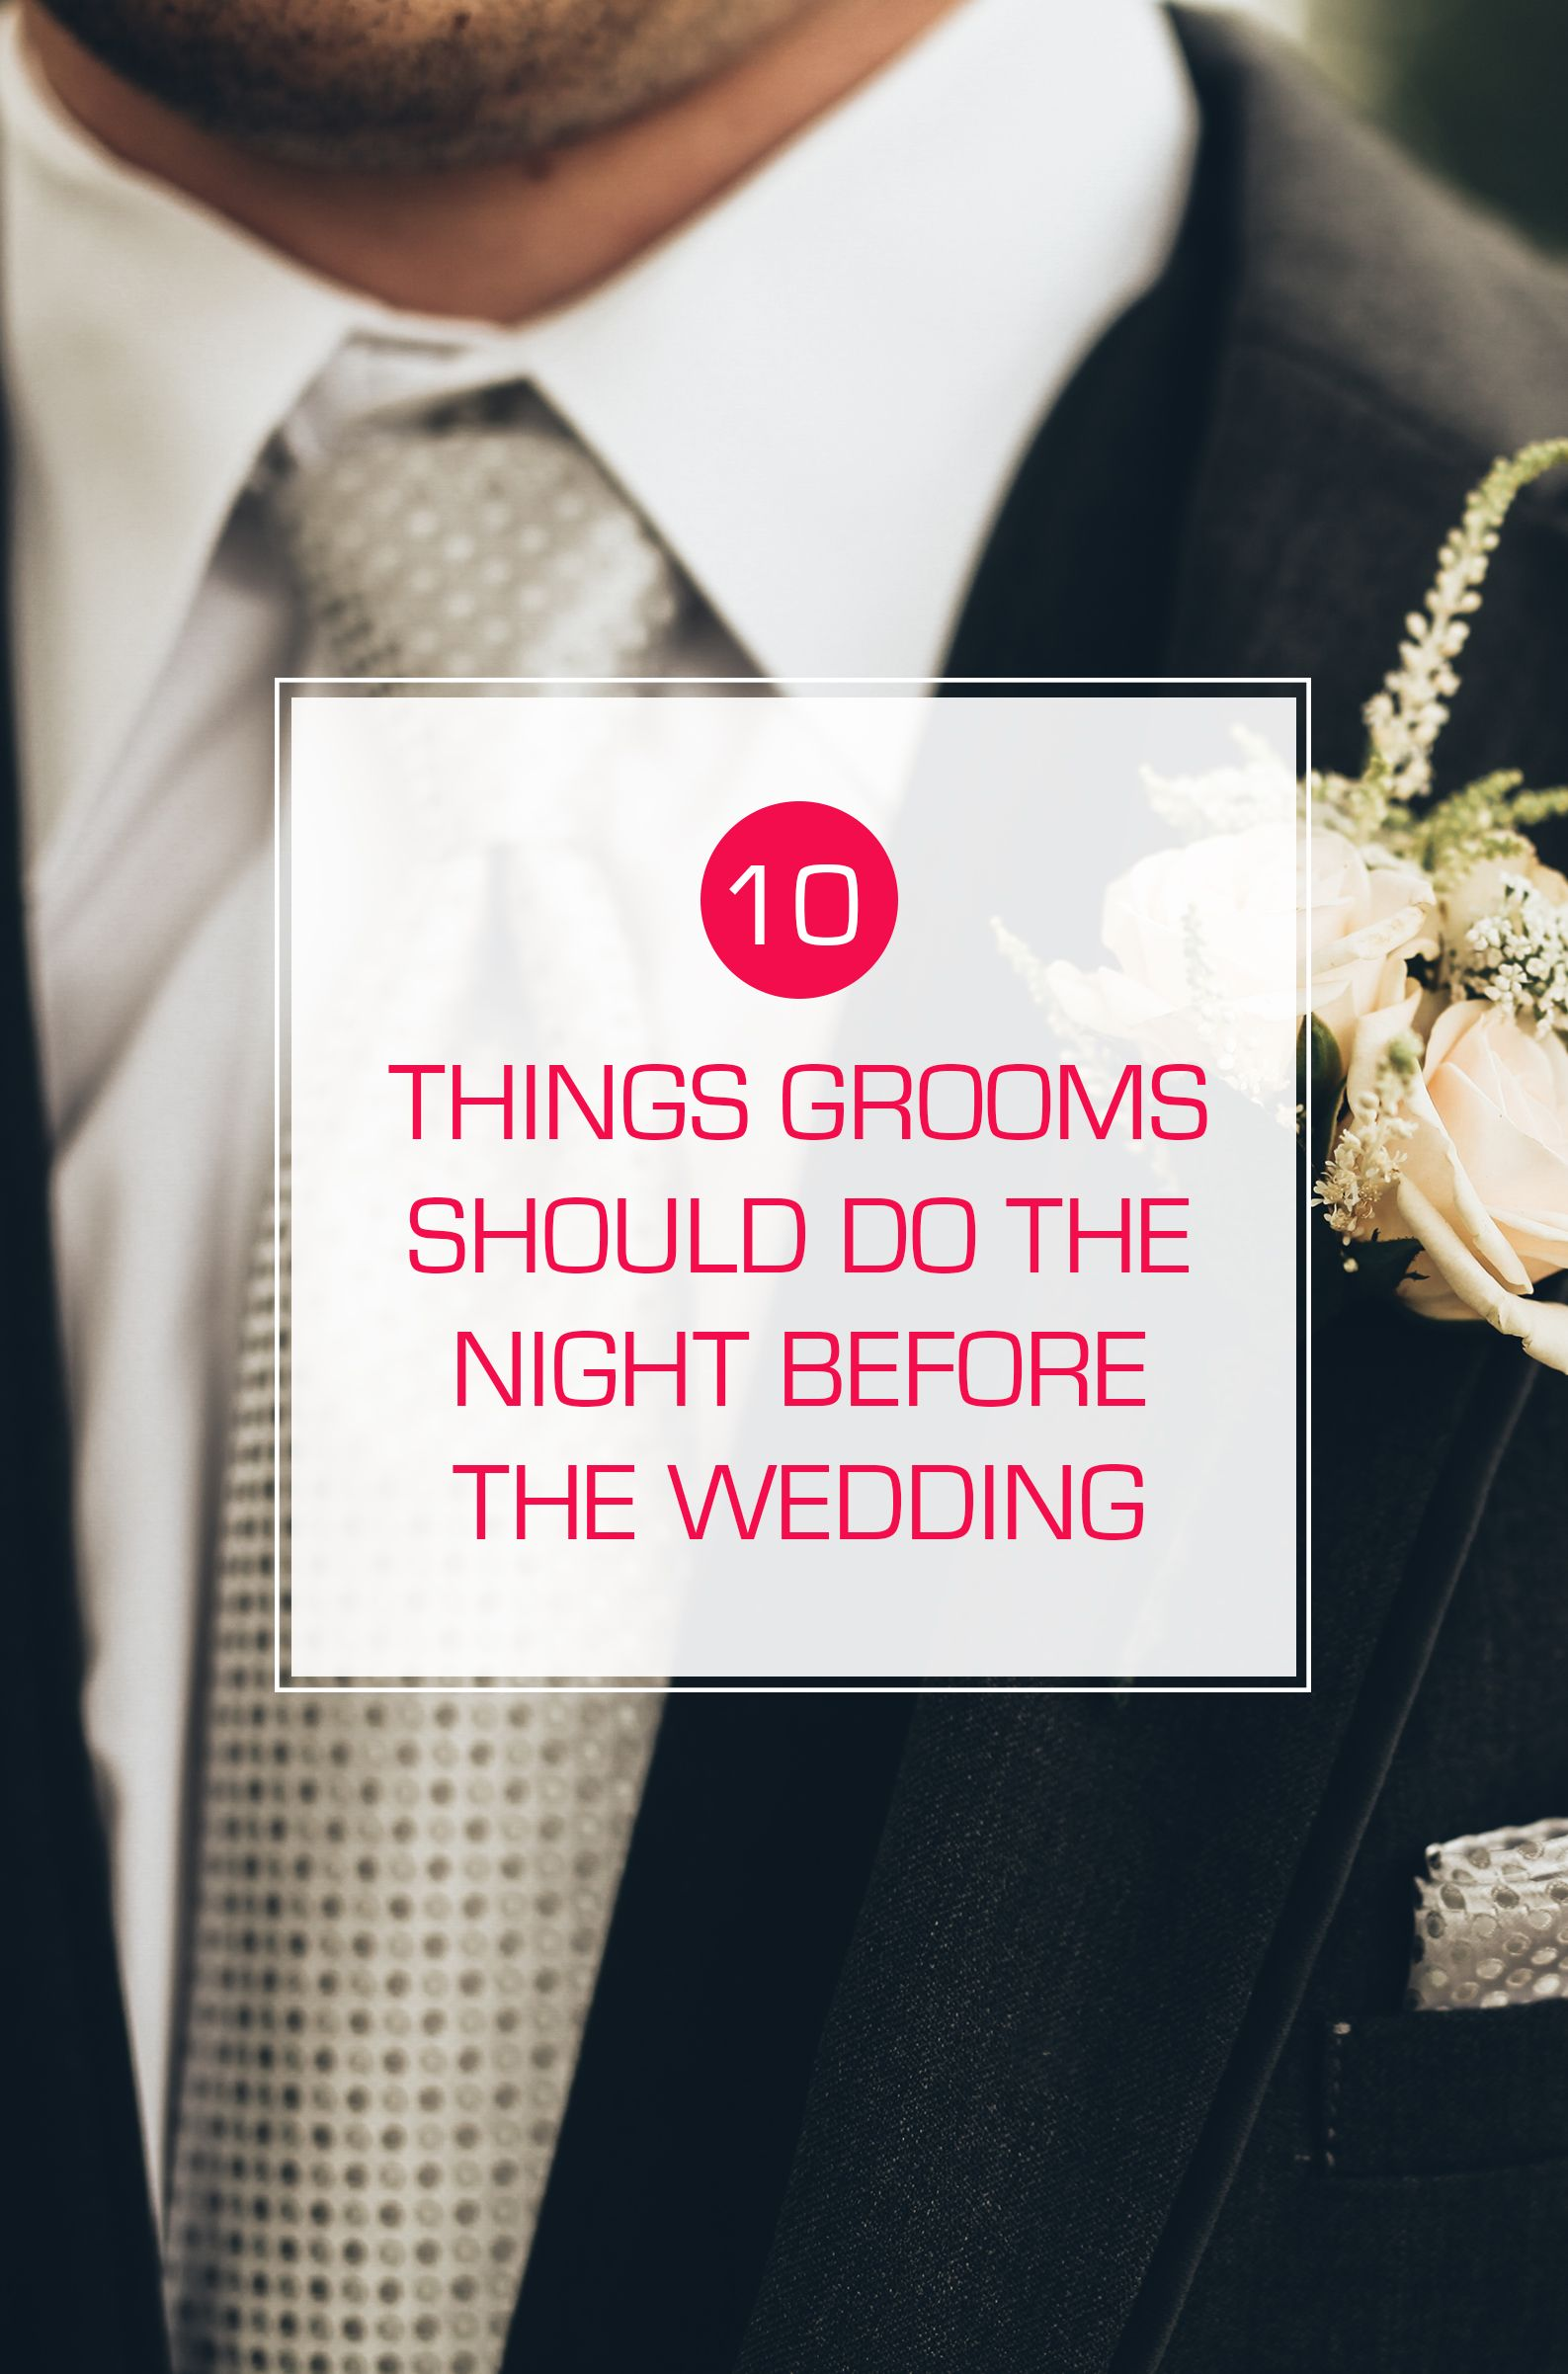 Groom duties 10 things to do the night before the wedding